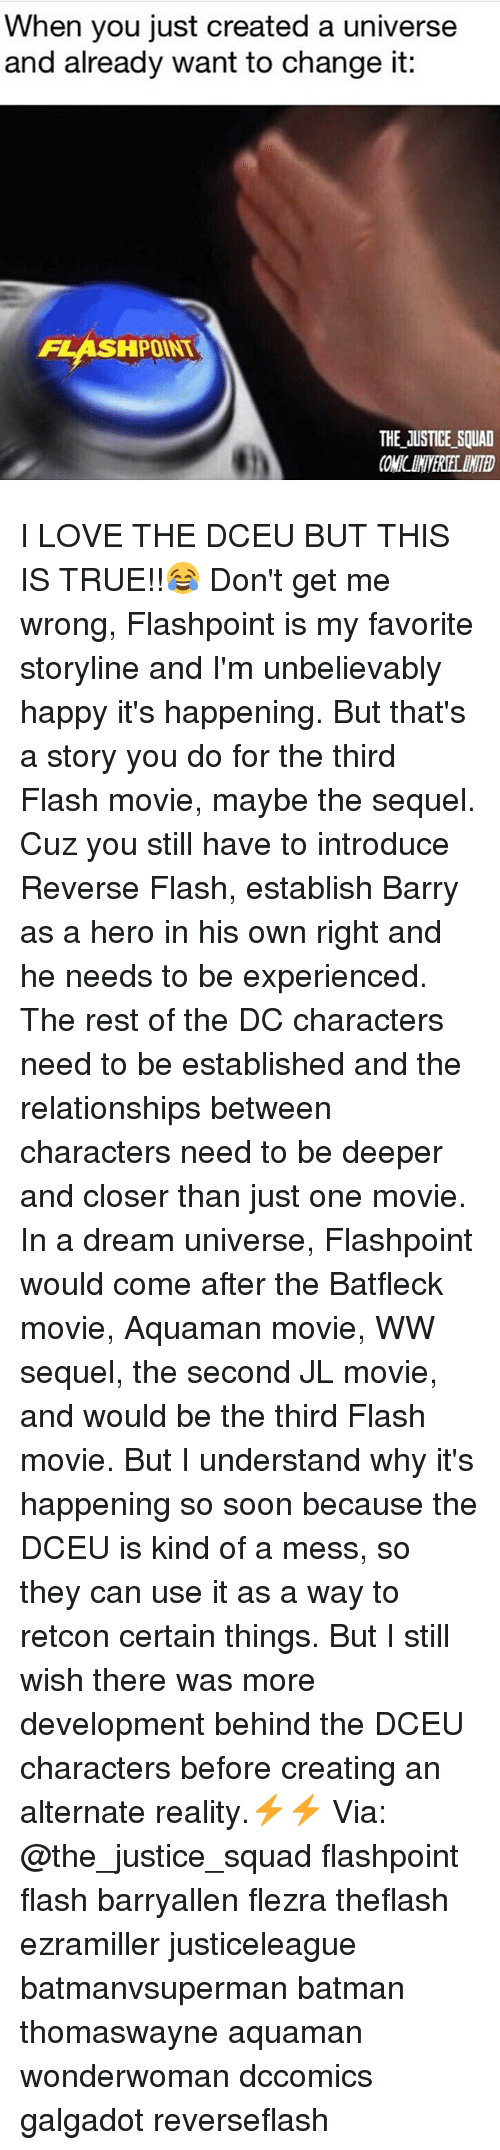 dc characters: When you just created a universe  and already want to change it:  FLASHPOINT  THE JUSTICE SQUAD I LOVE THE DCEU BUT THIS IS TRUE!!😂 Don't get me wrong, Flashpoint is my favorite storyline and I'm unbelievably happy it's happening. But that's a story you do for the third Flash movie, maybe the sequel. Cuz you still have to introduce Reverse Flash, establish Barry as a hero in his own right and he needs to be experienced. The rest of the DC characters need to be established and the relationships between characters need to be deeper and closer than just one movie. In a dream universe, Flashpoint would come after the Batfleck movie, Aquaman movie, WW sequel, the second JL movie, and would be the third Flash movie. But I understand why it's happening so soon because the DCEU is kind of a mess, so they can use it as a way to retcon certain things. But I still wish there was more development behind the DCEU characters before creating an alternate reality.⚡️⚡️ Via: @the_justice_squad flashpoint flash barryallen flezra theflash ezramiller justiceleague batmanvsuperman batman thomaswayne aquaman wonderwoman dccomics galgadot reverseflash